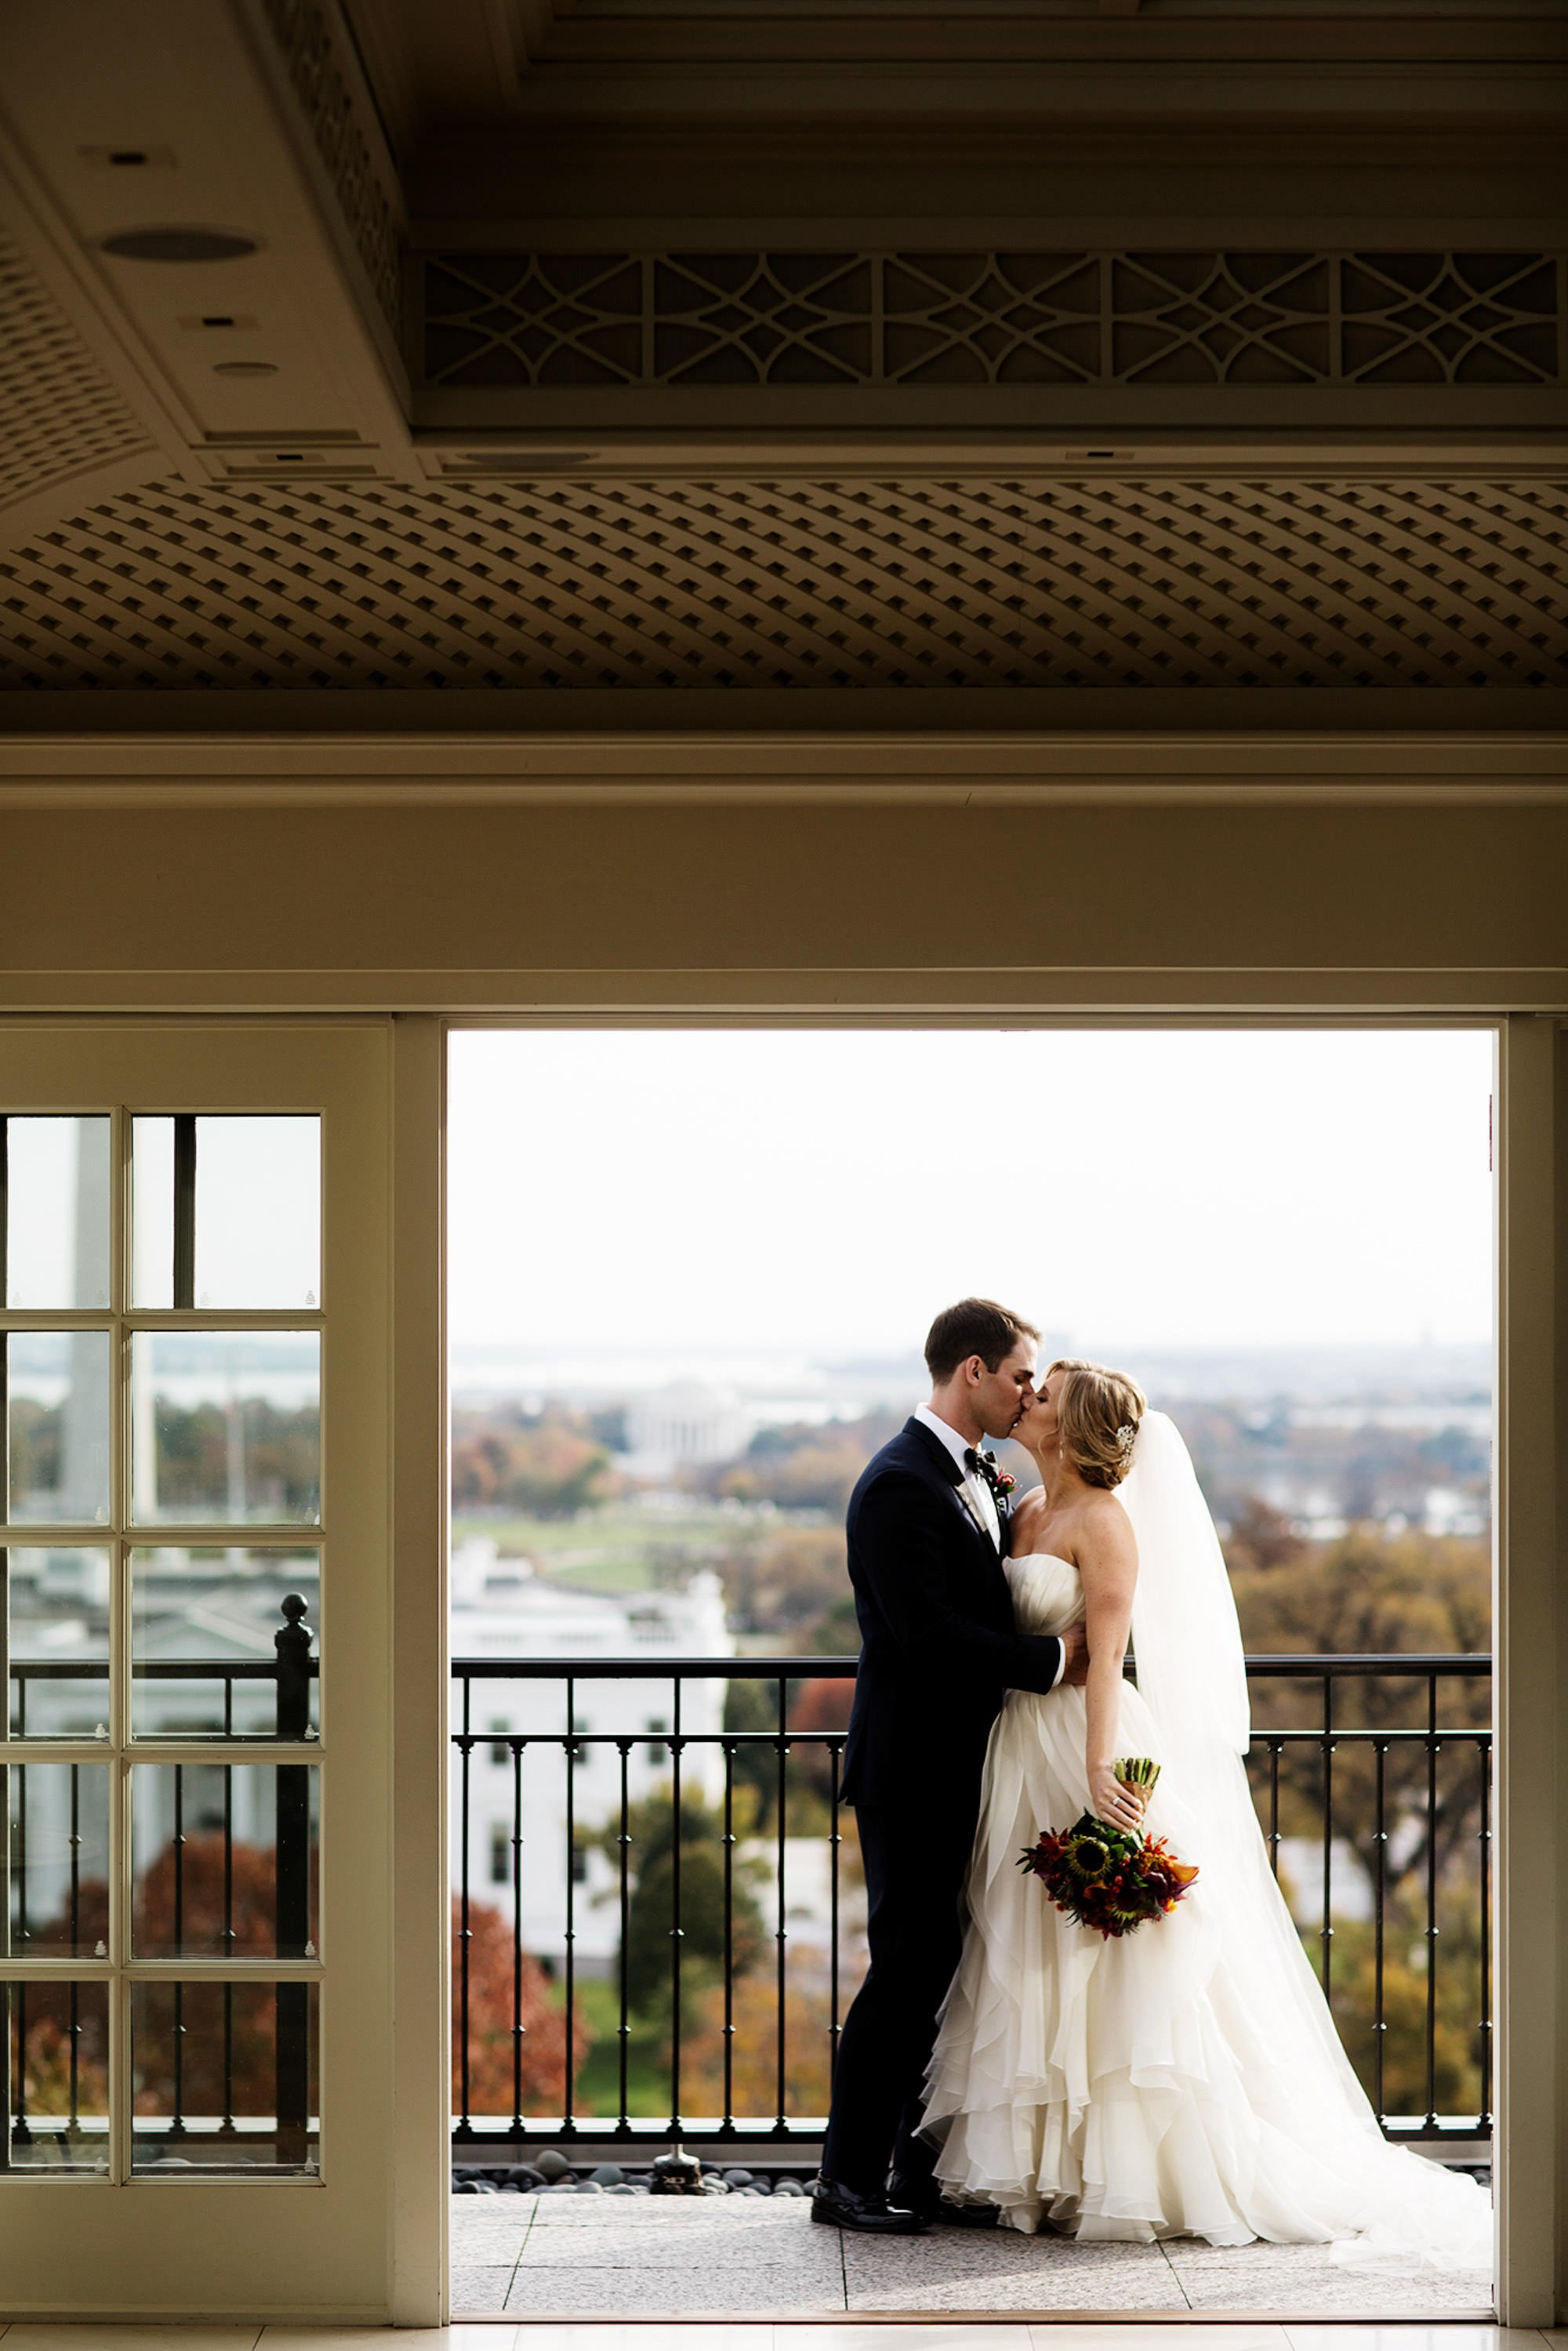 The bride and groom kiss on the patio of the Hay Adams hotel in Washington, DC before the wedding ceremony.